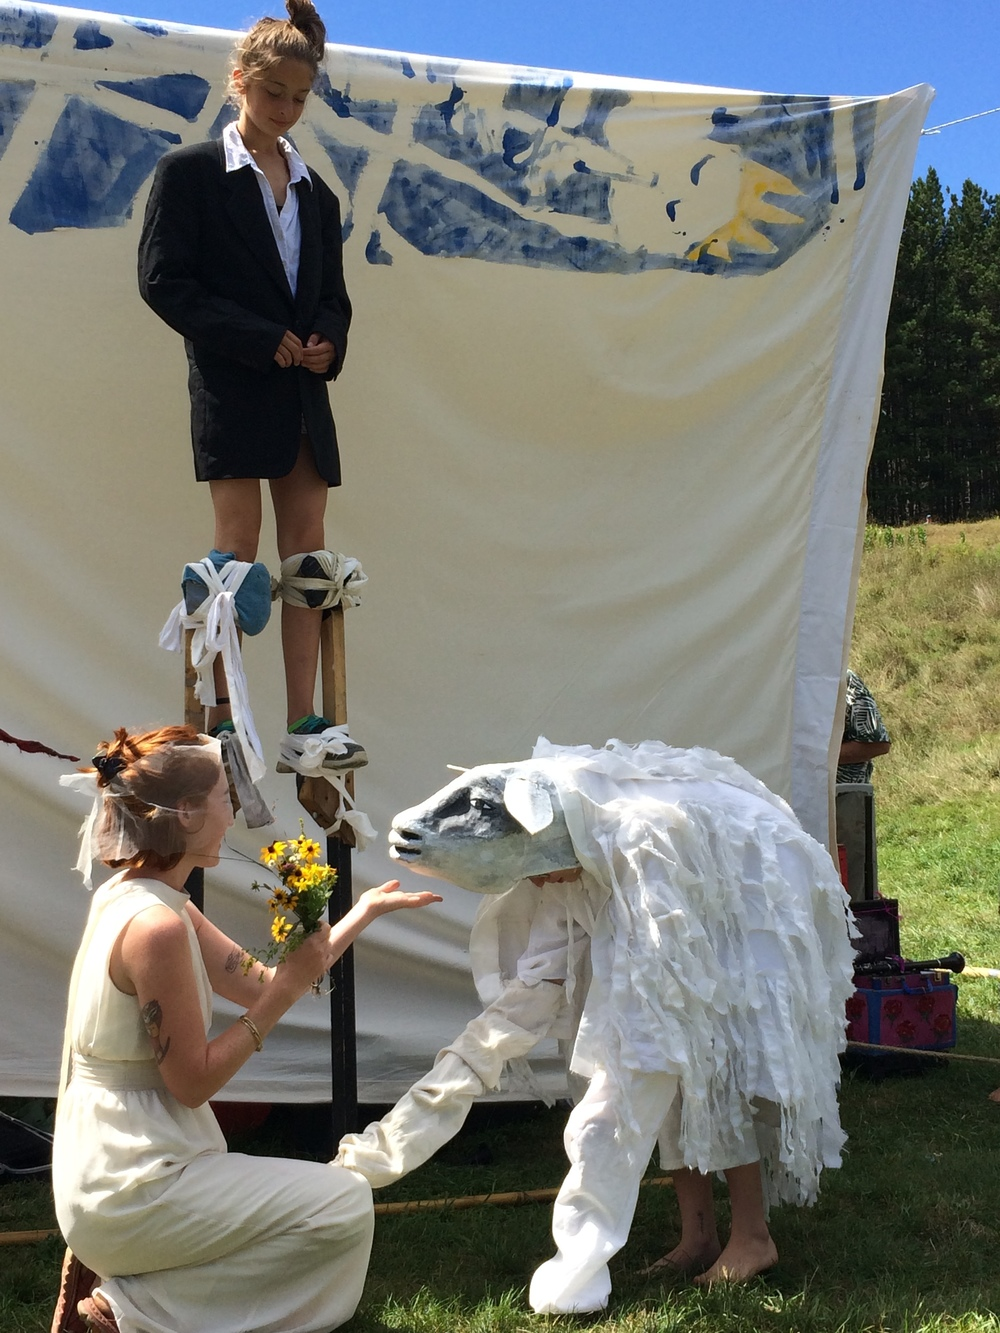 The shepherdess weds her sheep in a miniature pastoral drama, courtesy of Bread and Puppet Theater.